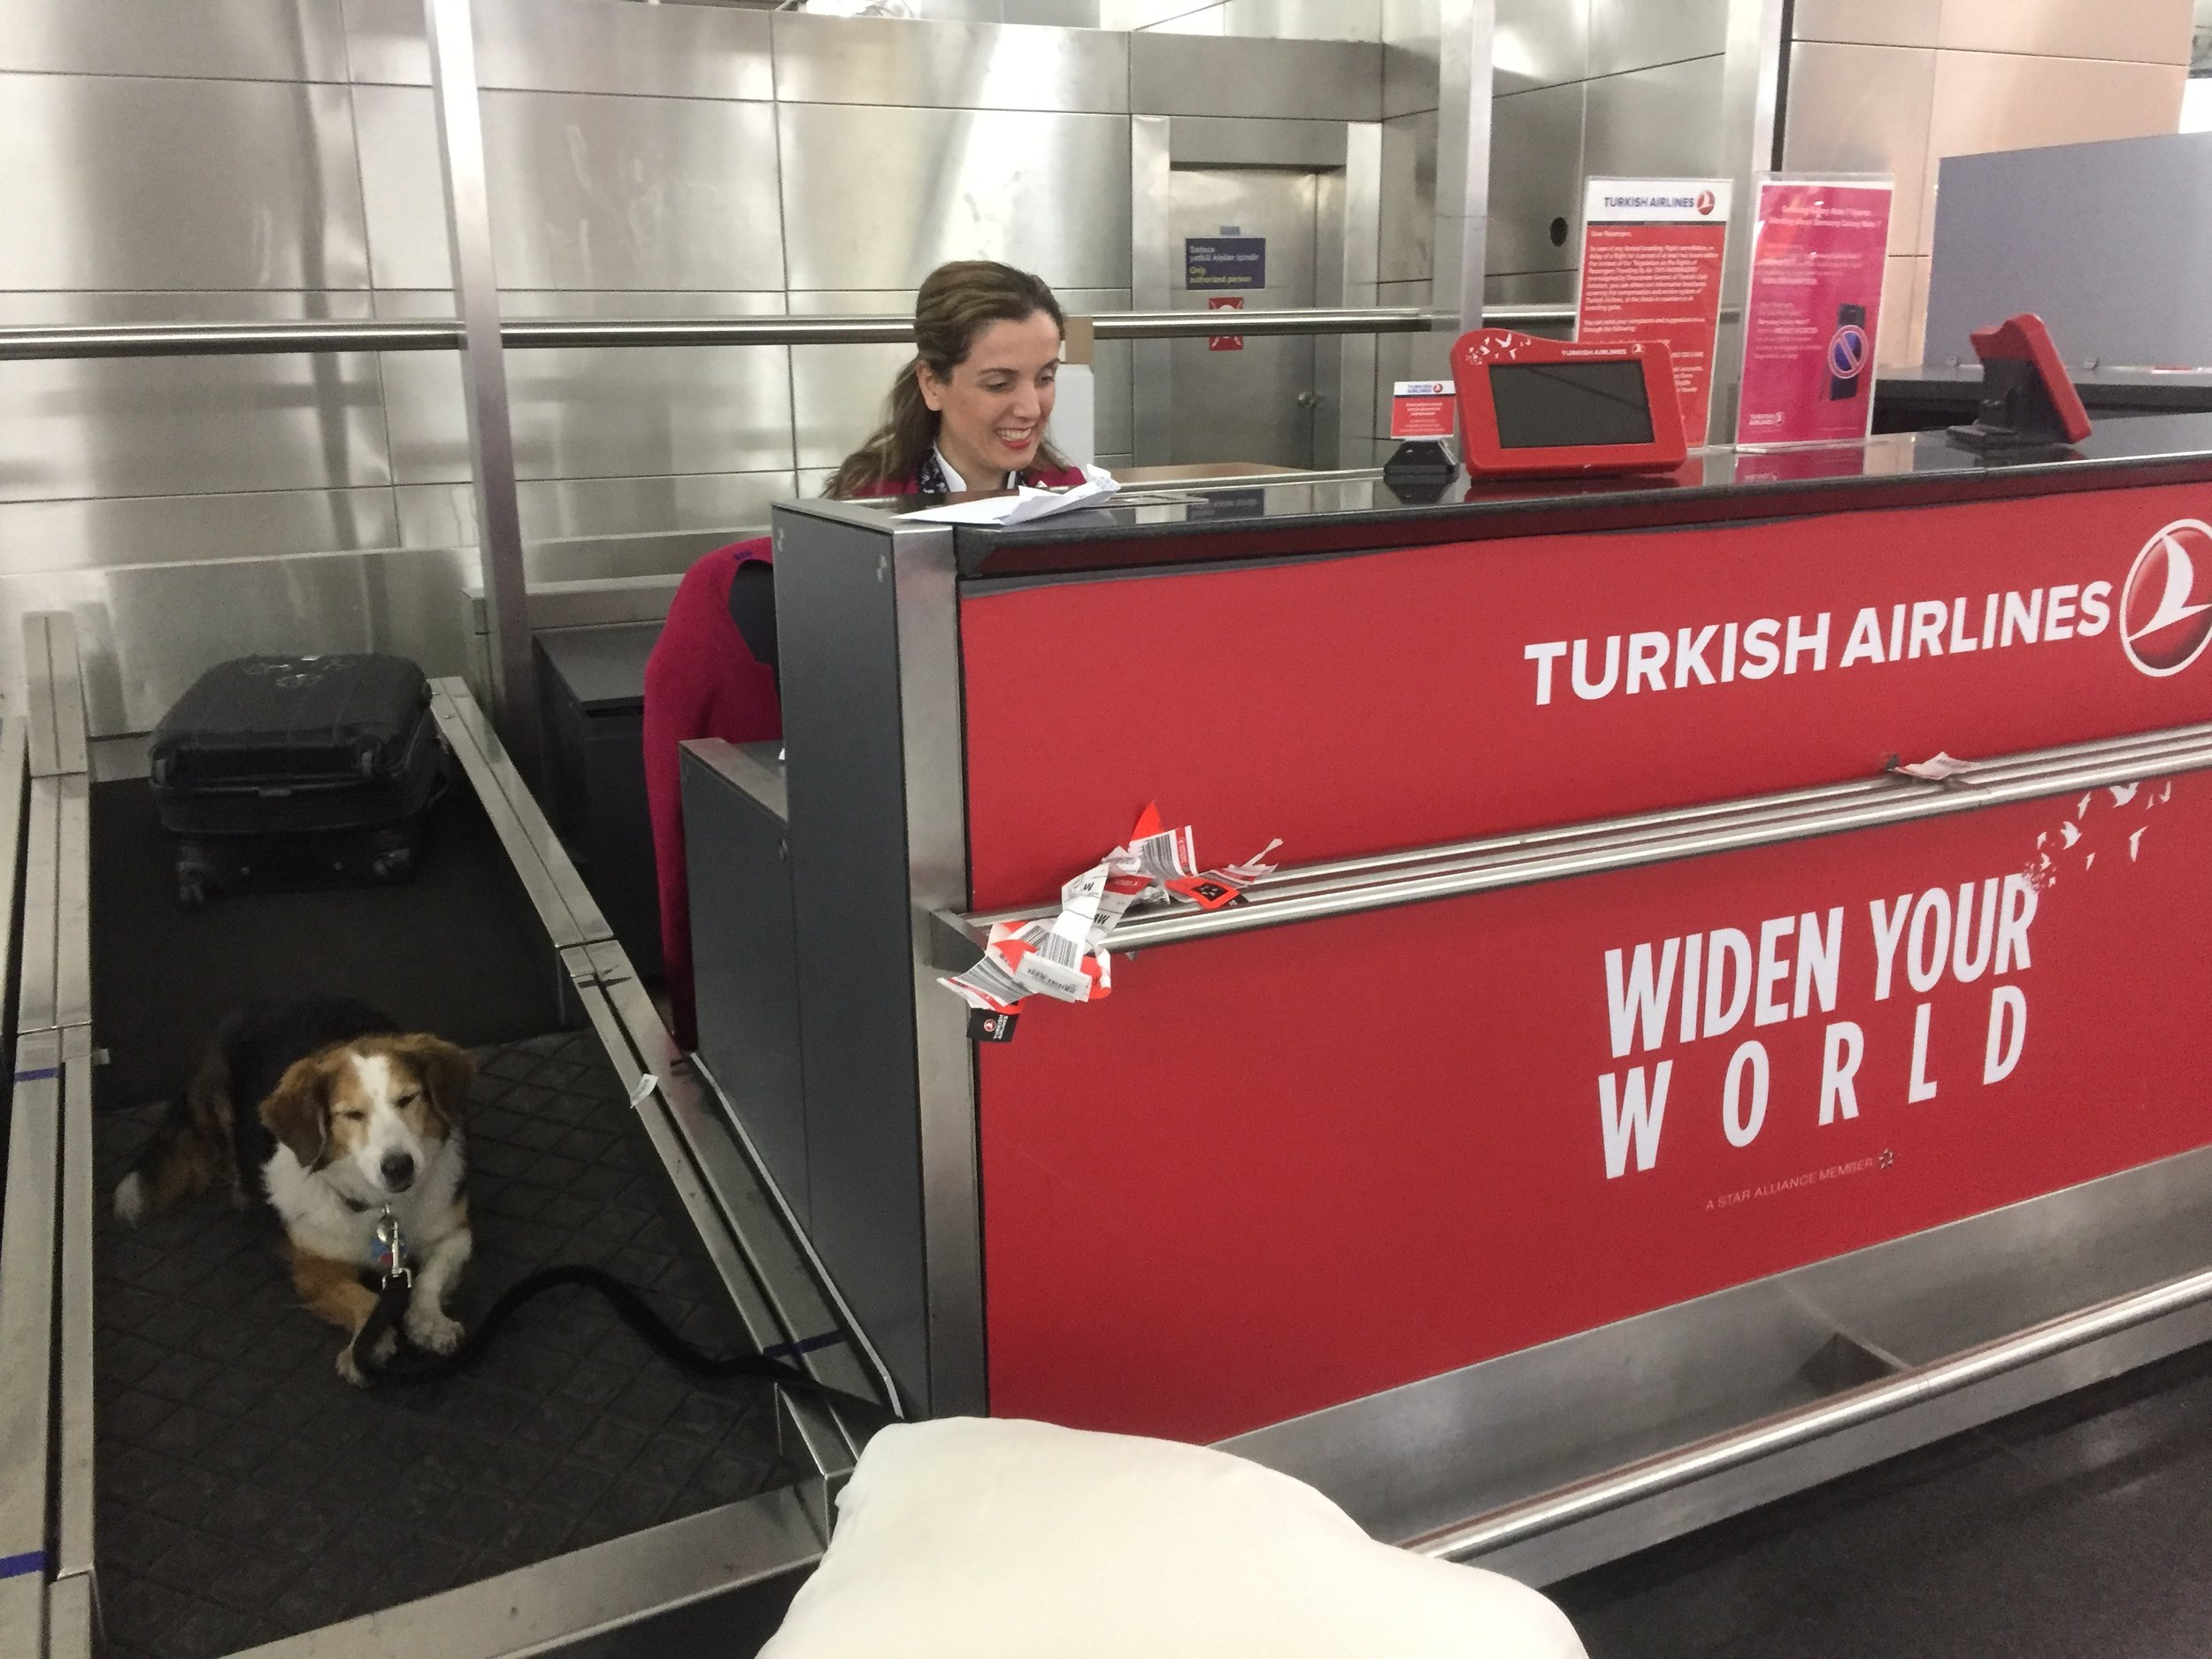 friendly folks at Turkish Airlines